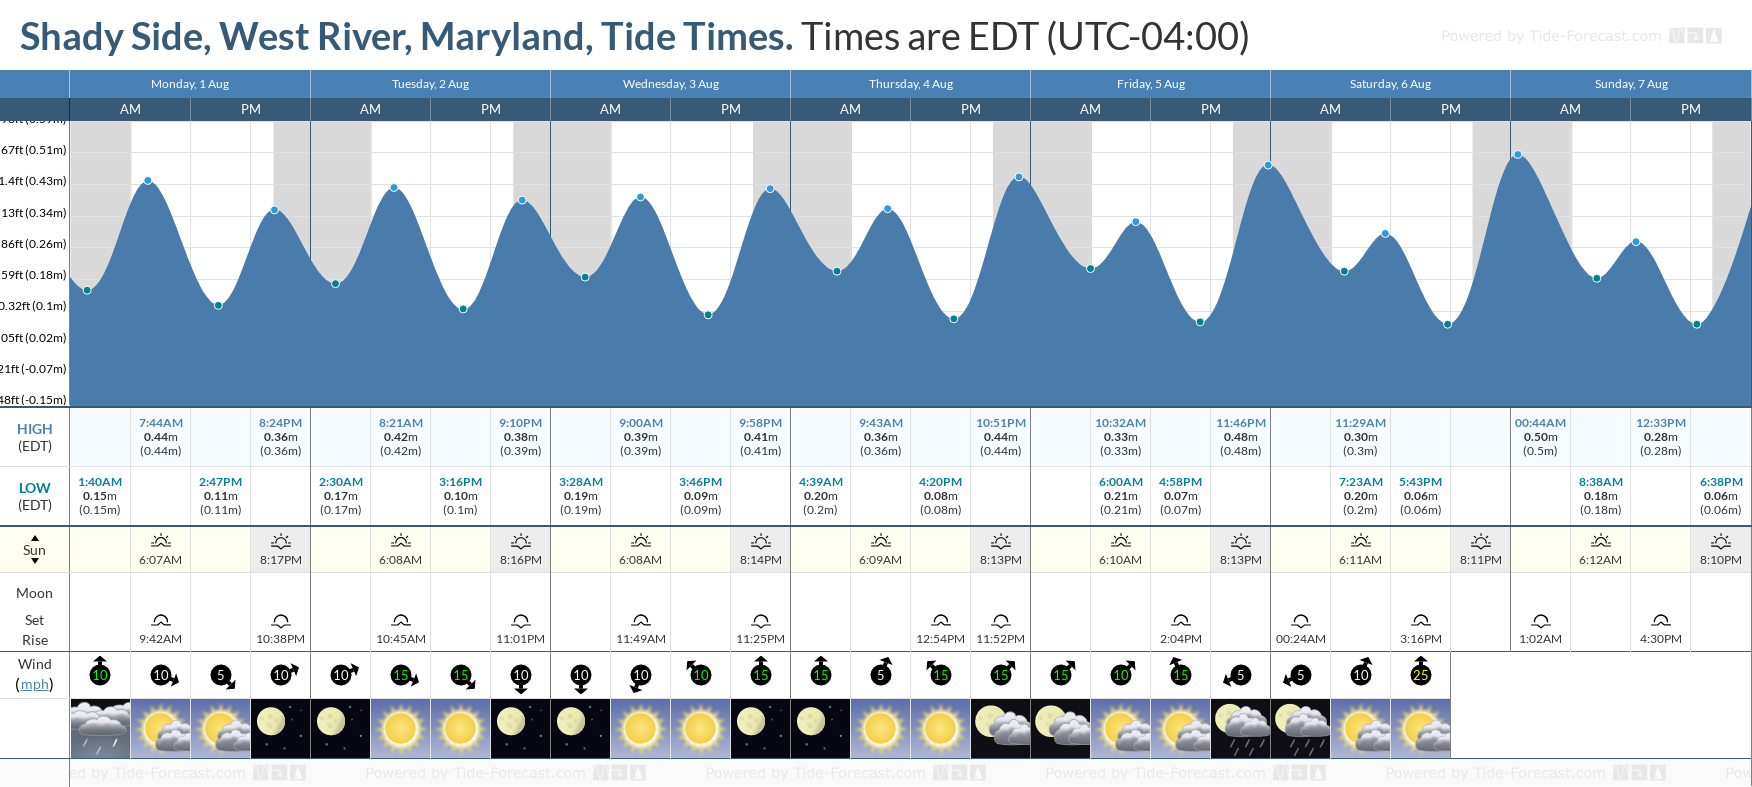 Shady Side, West River, Maryland Tide Chart including high and low tide tide times for the next 7 days